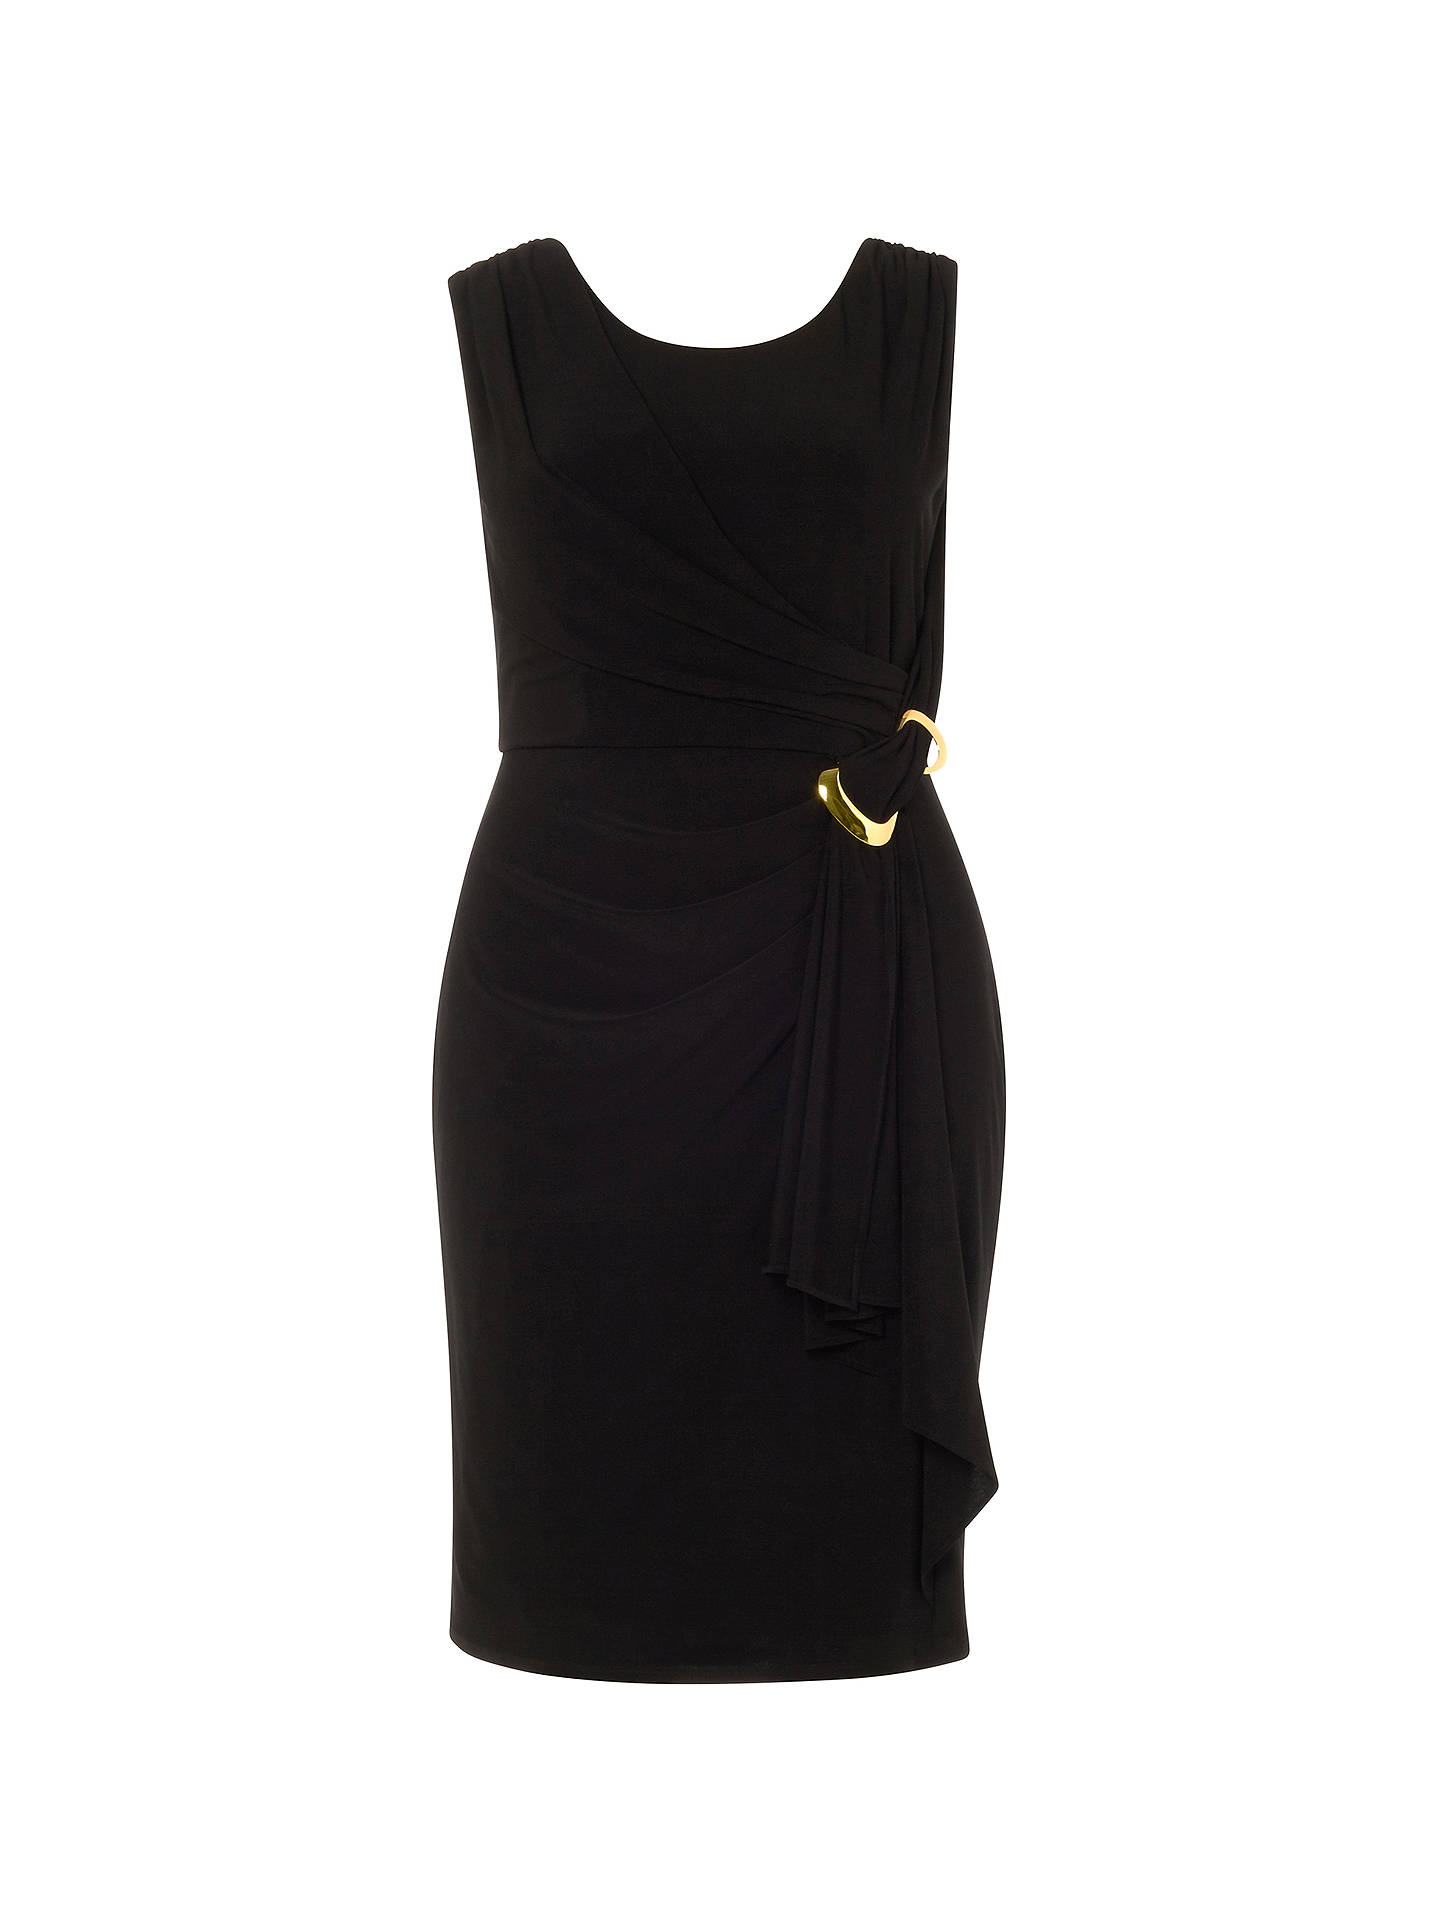 BuyStudio 8 Arabella Dress, Black, 12 Online at johnlewis.com